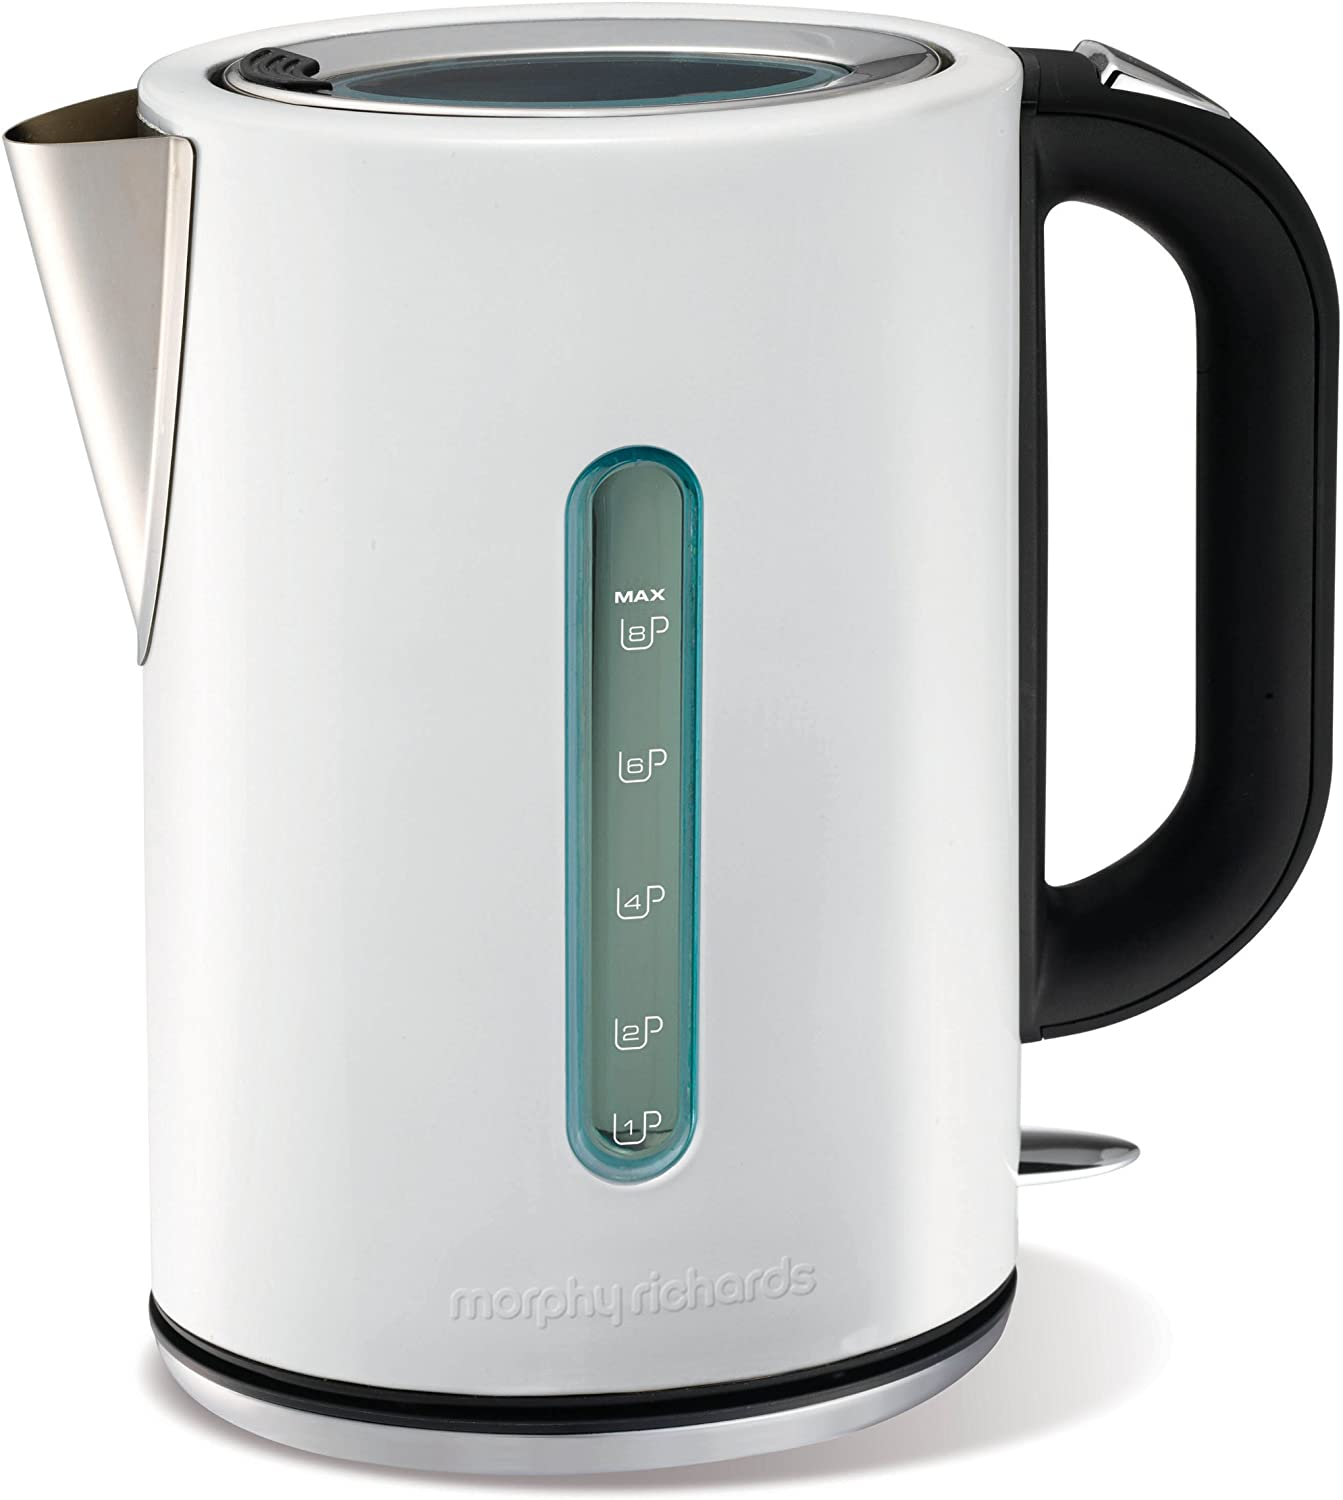 Morphy Richards Elipta 43941 Jug Kettle